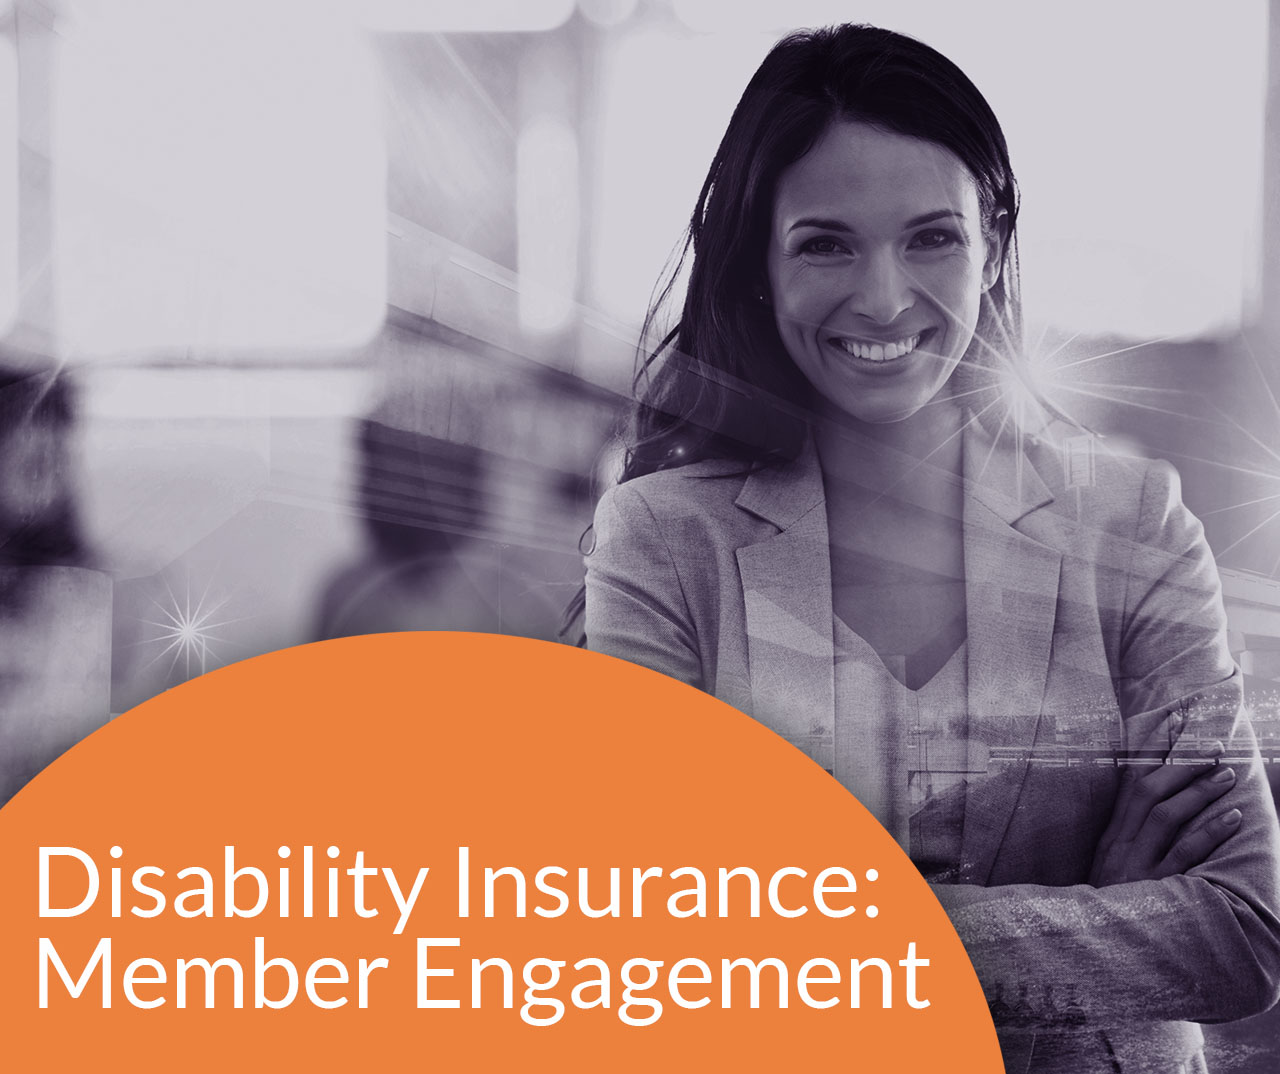 DISABILITY INSURANCE: MEMBER ENGAGEMENT